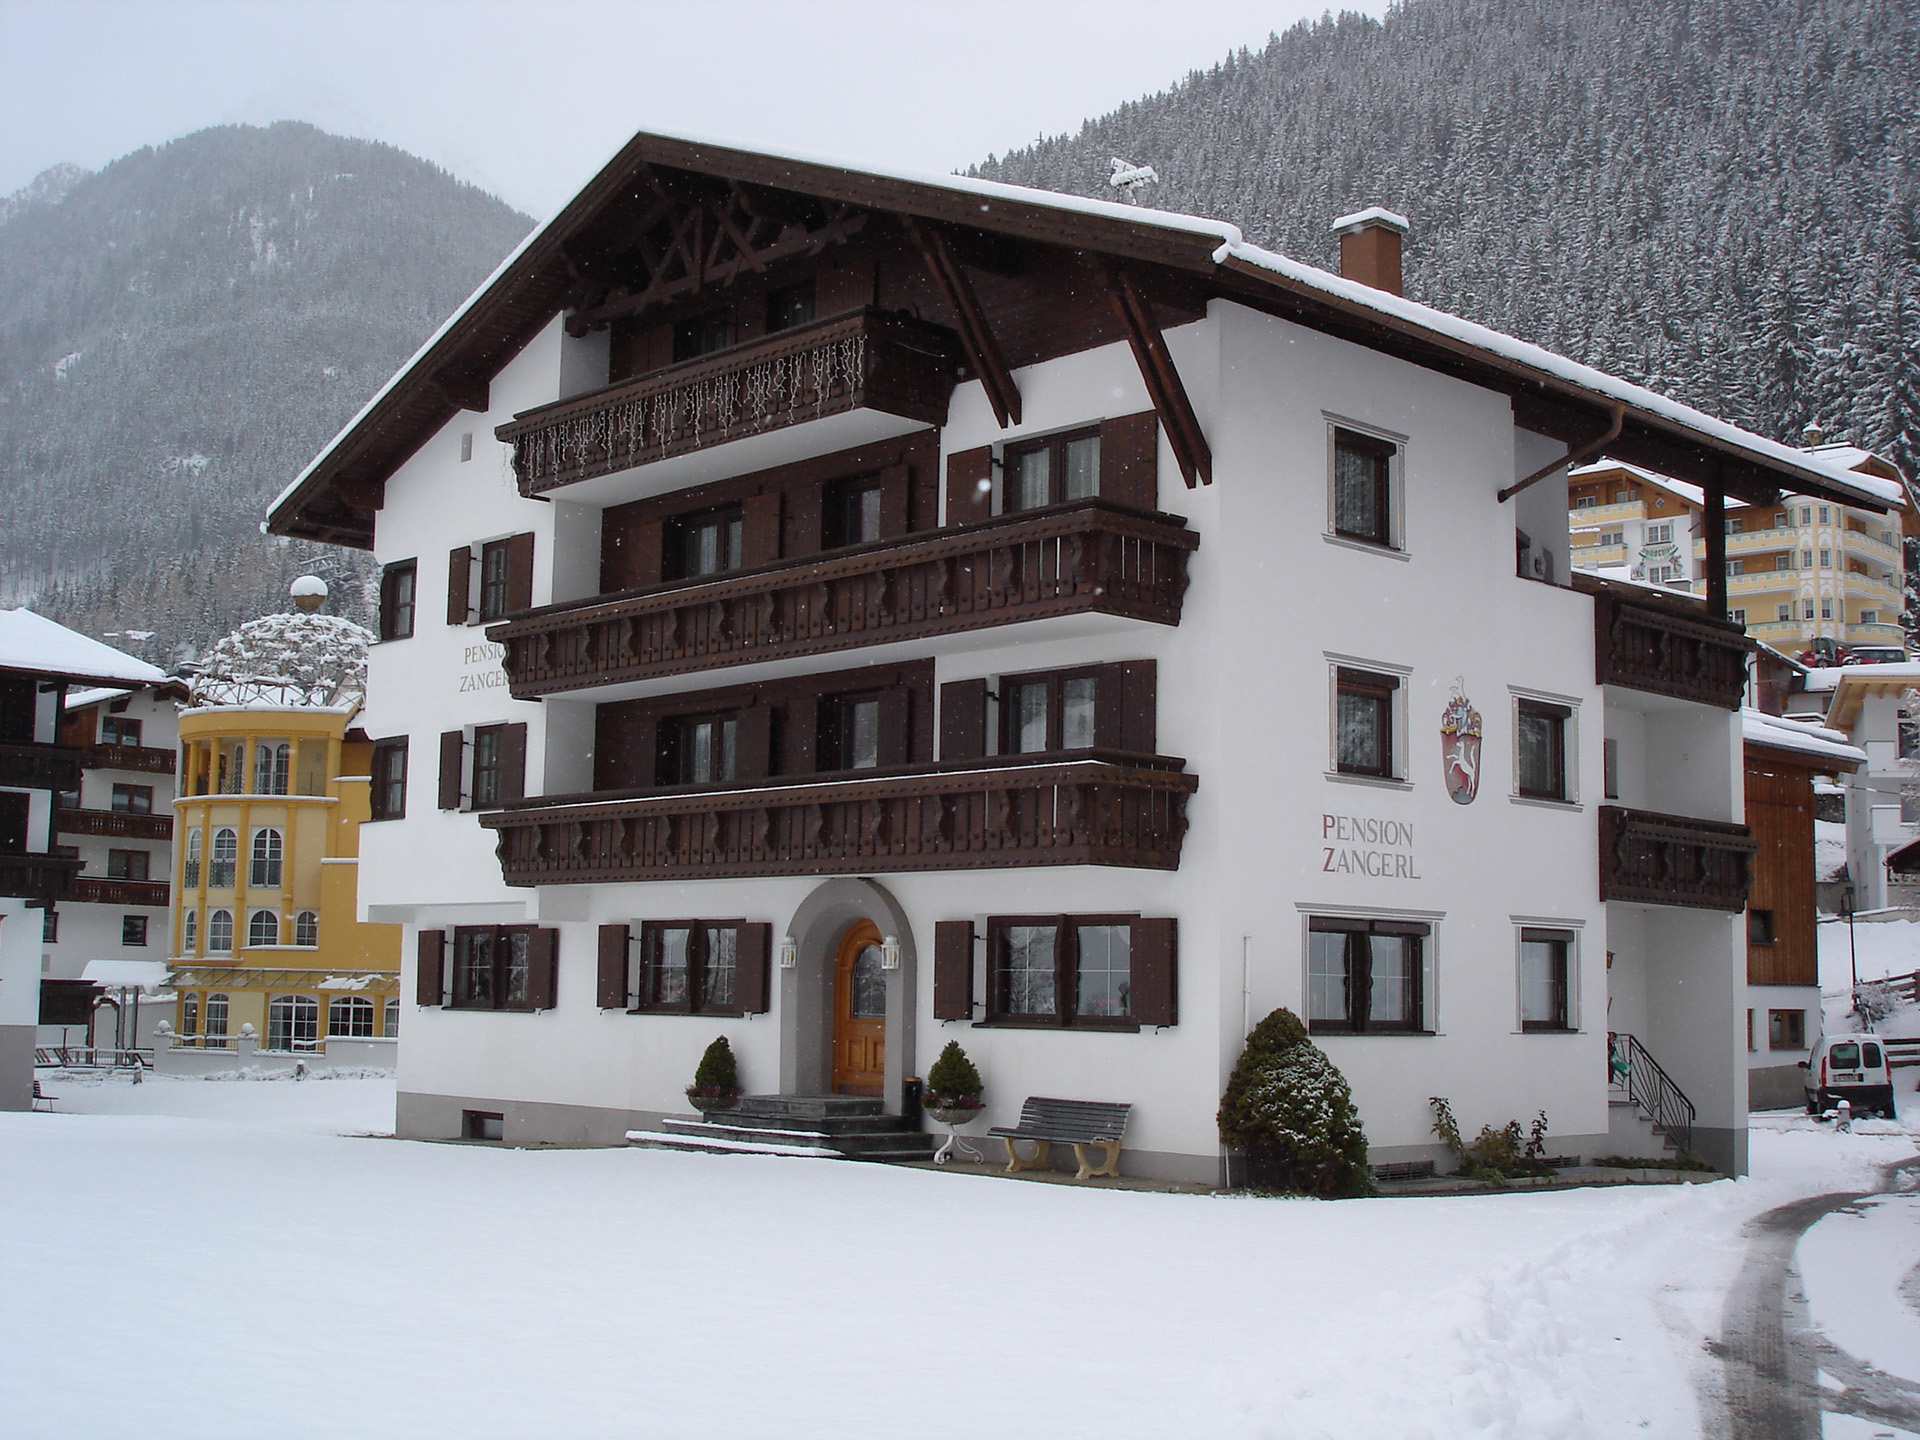 Pension Zangerl Ischgl